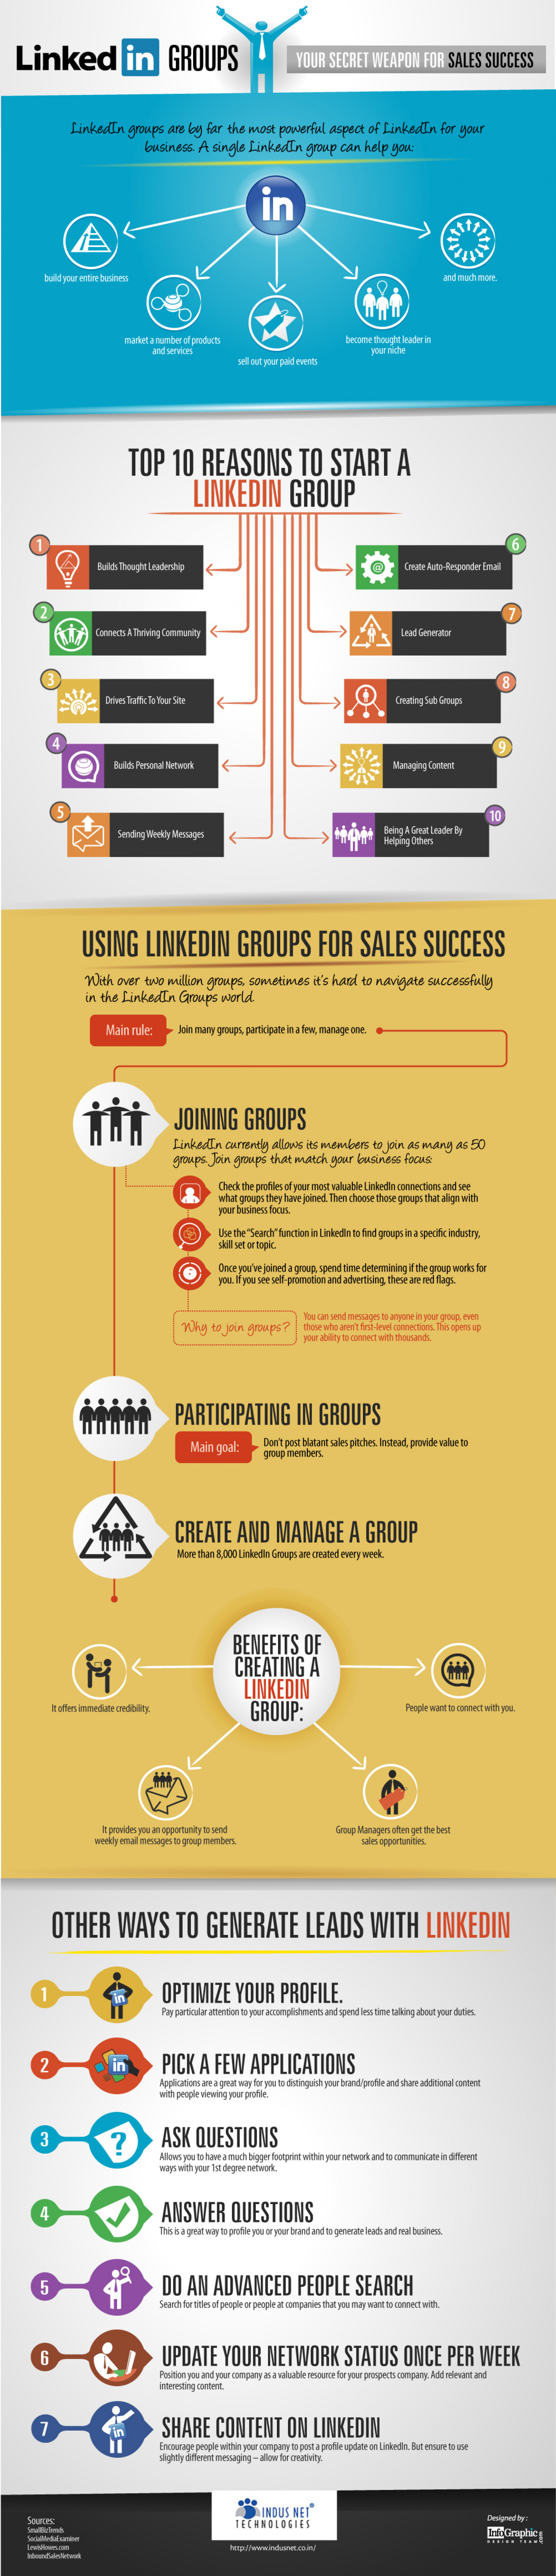 LinkedIn Groups: Your Secret Weapon for Sales Success Infographic